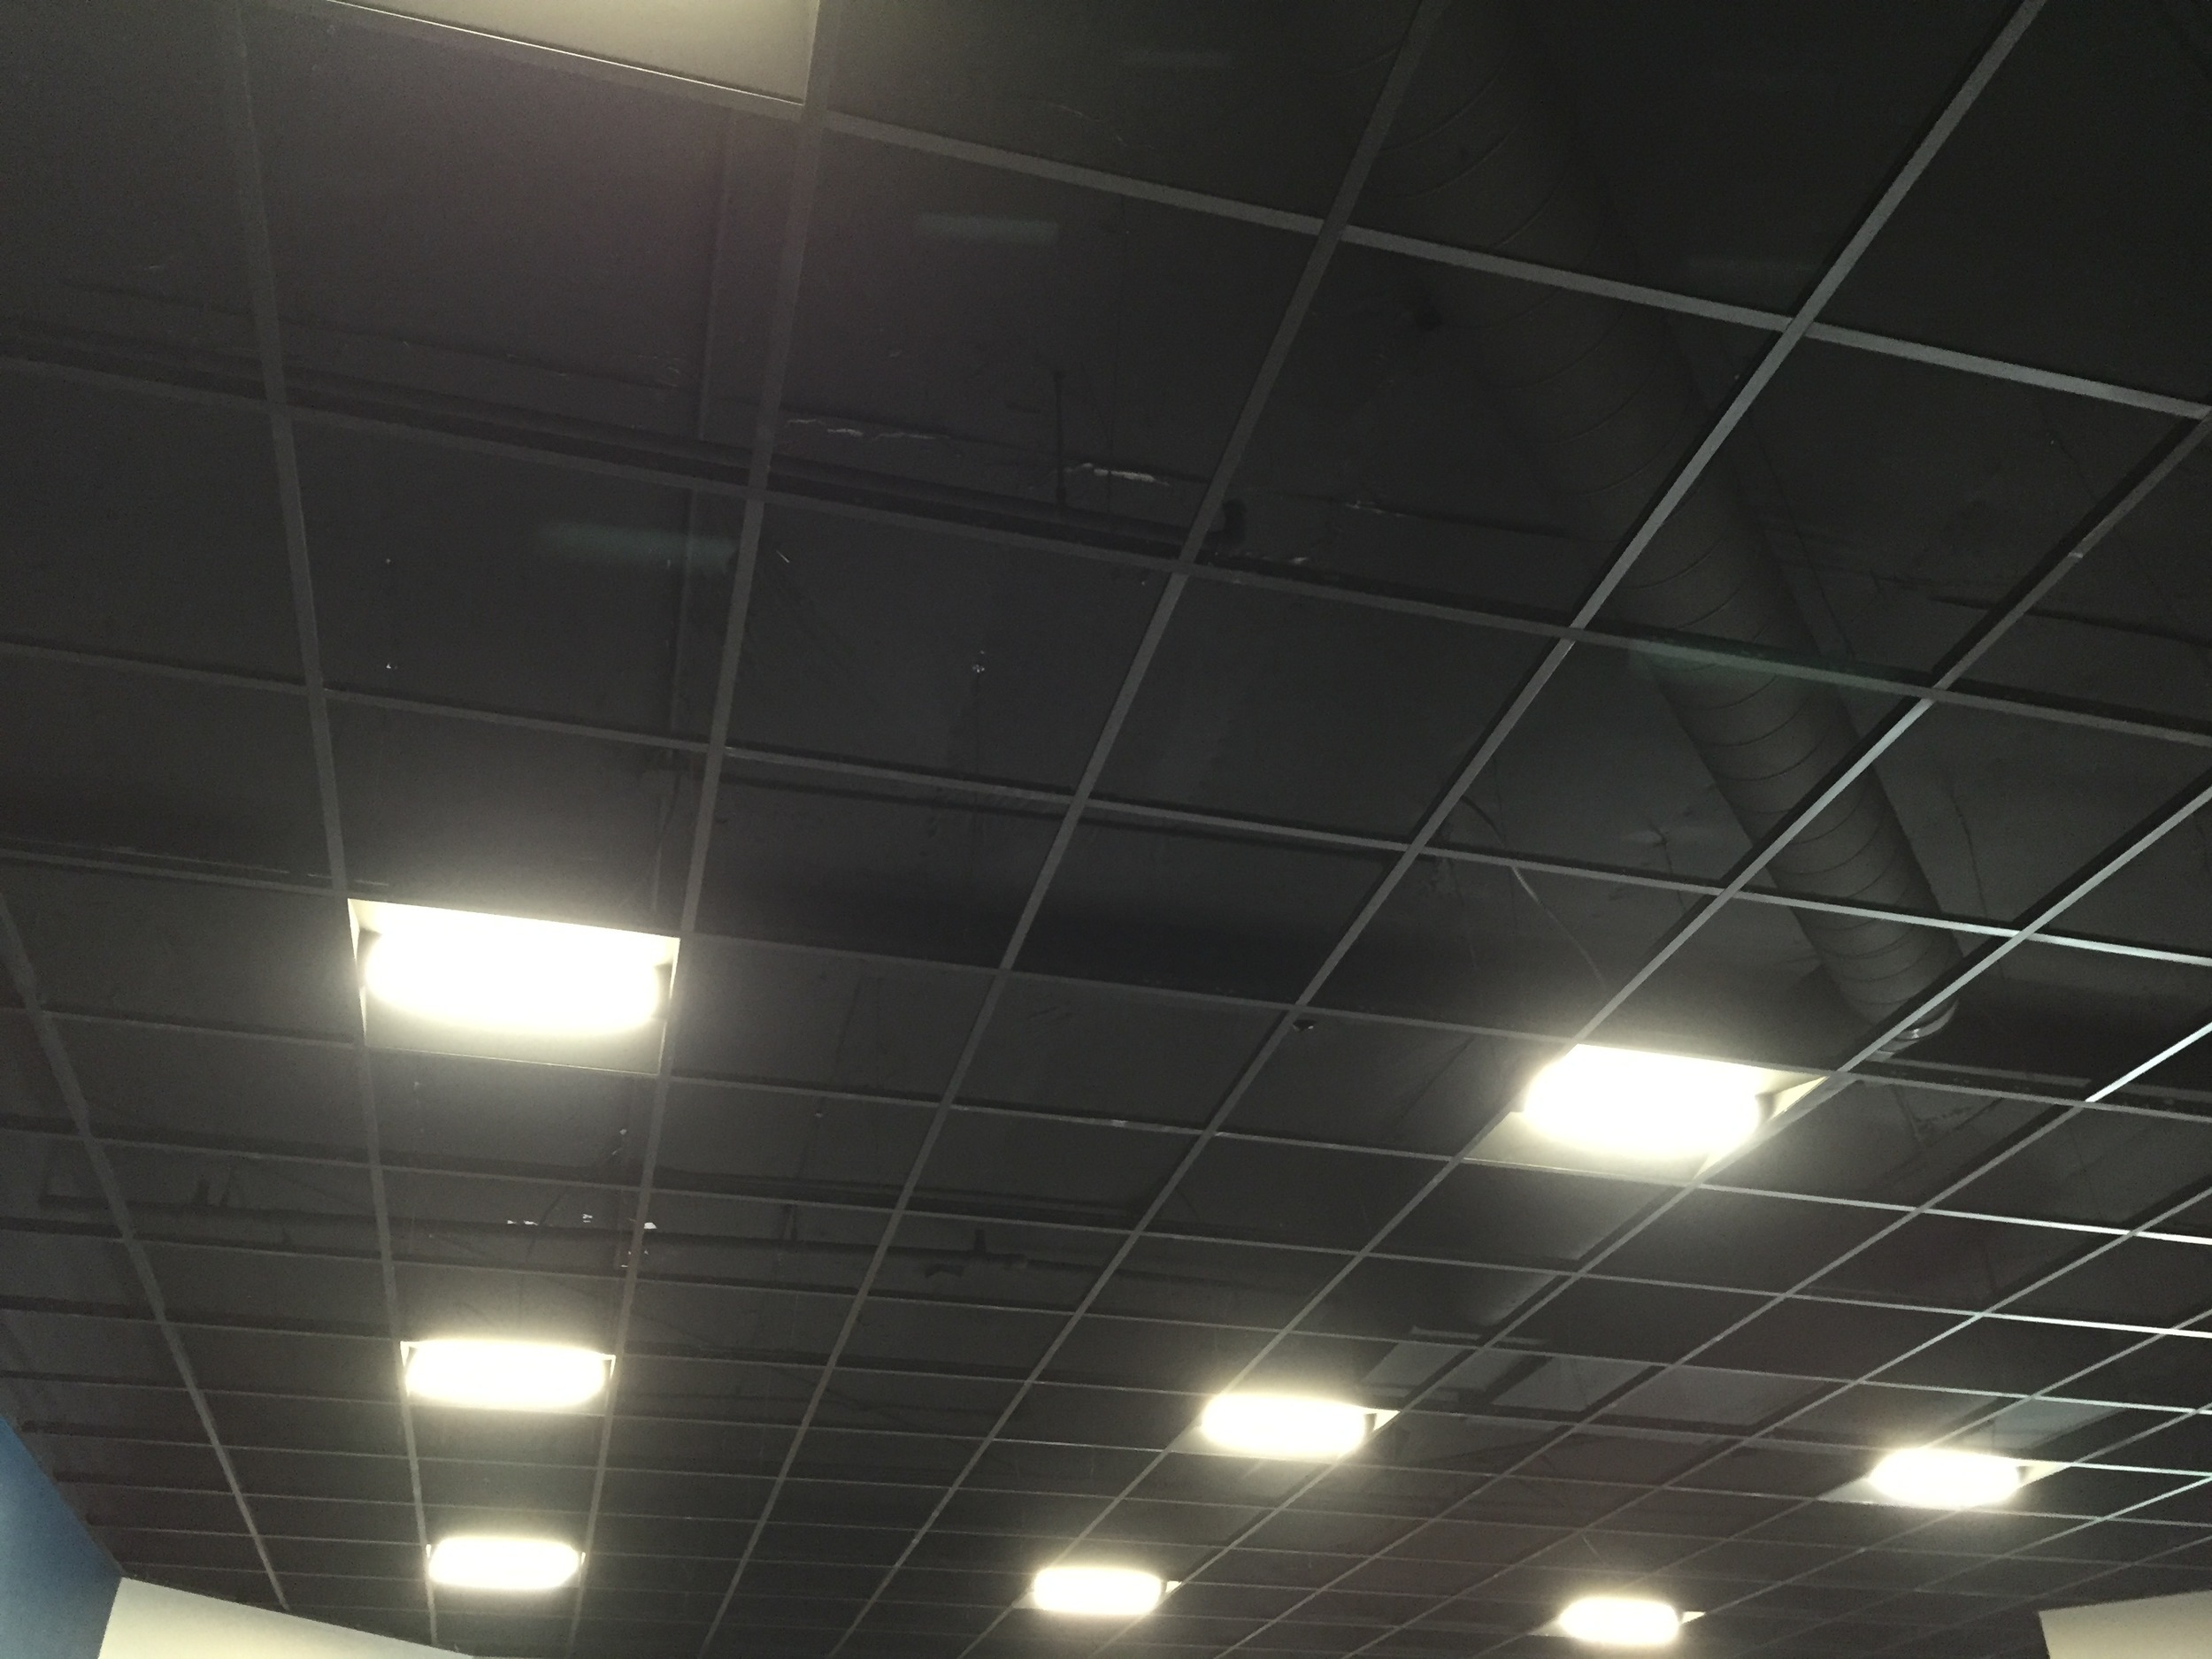 Ceiling grids are going in.